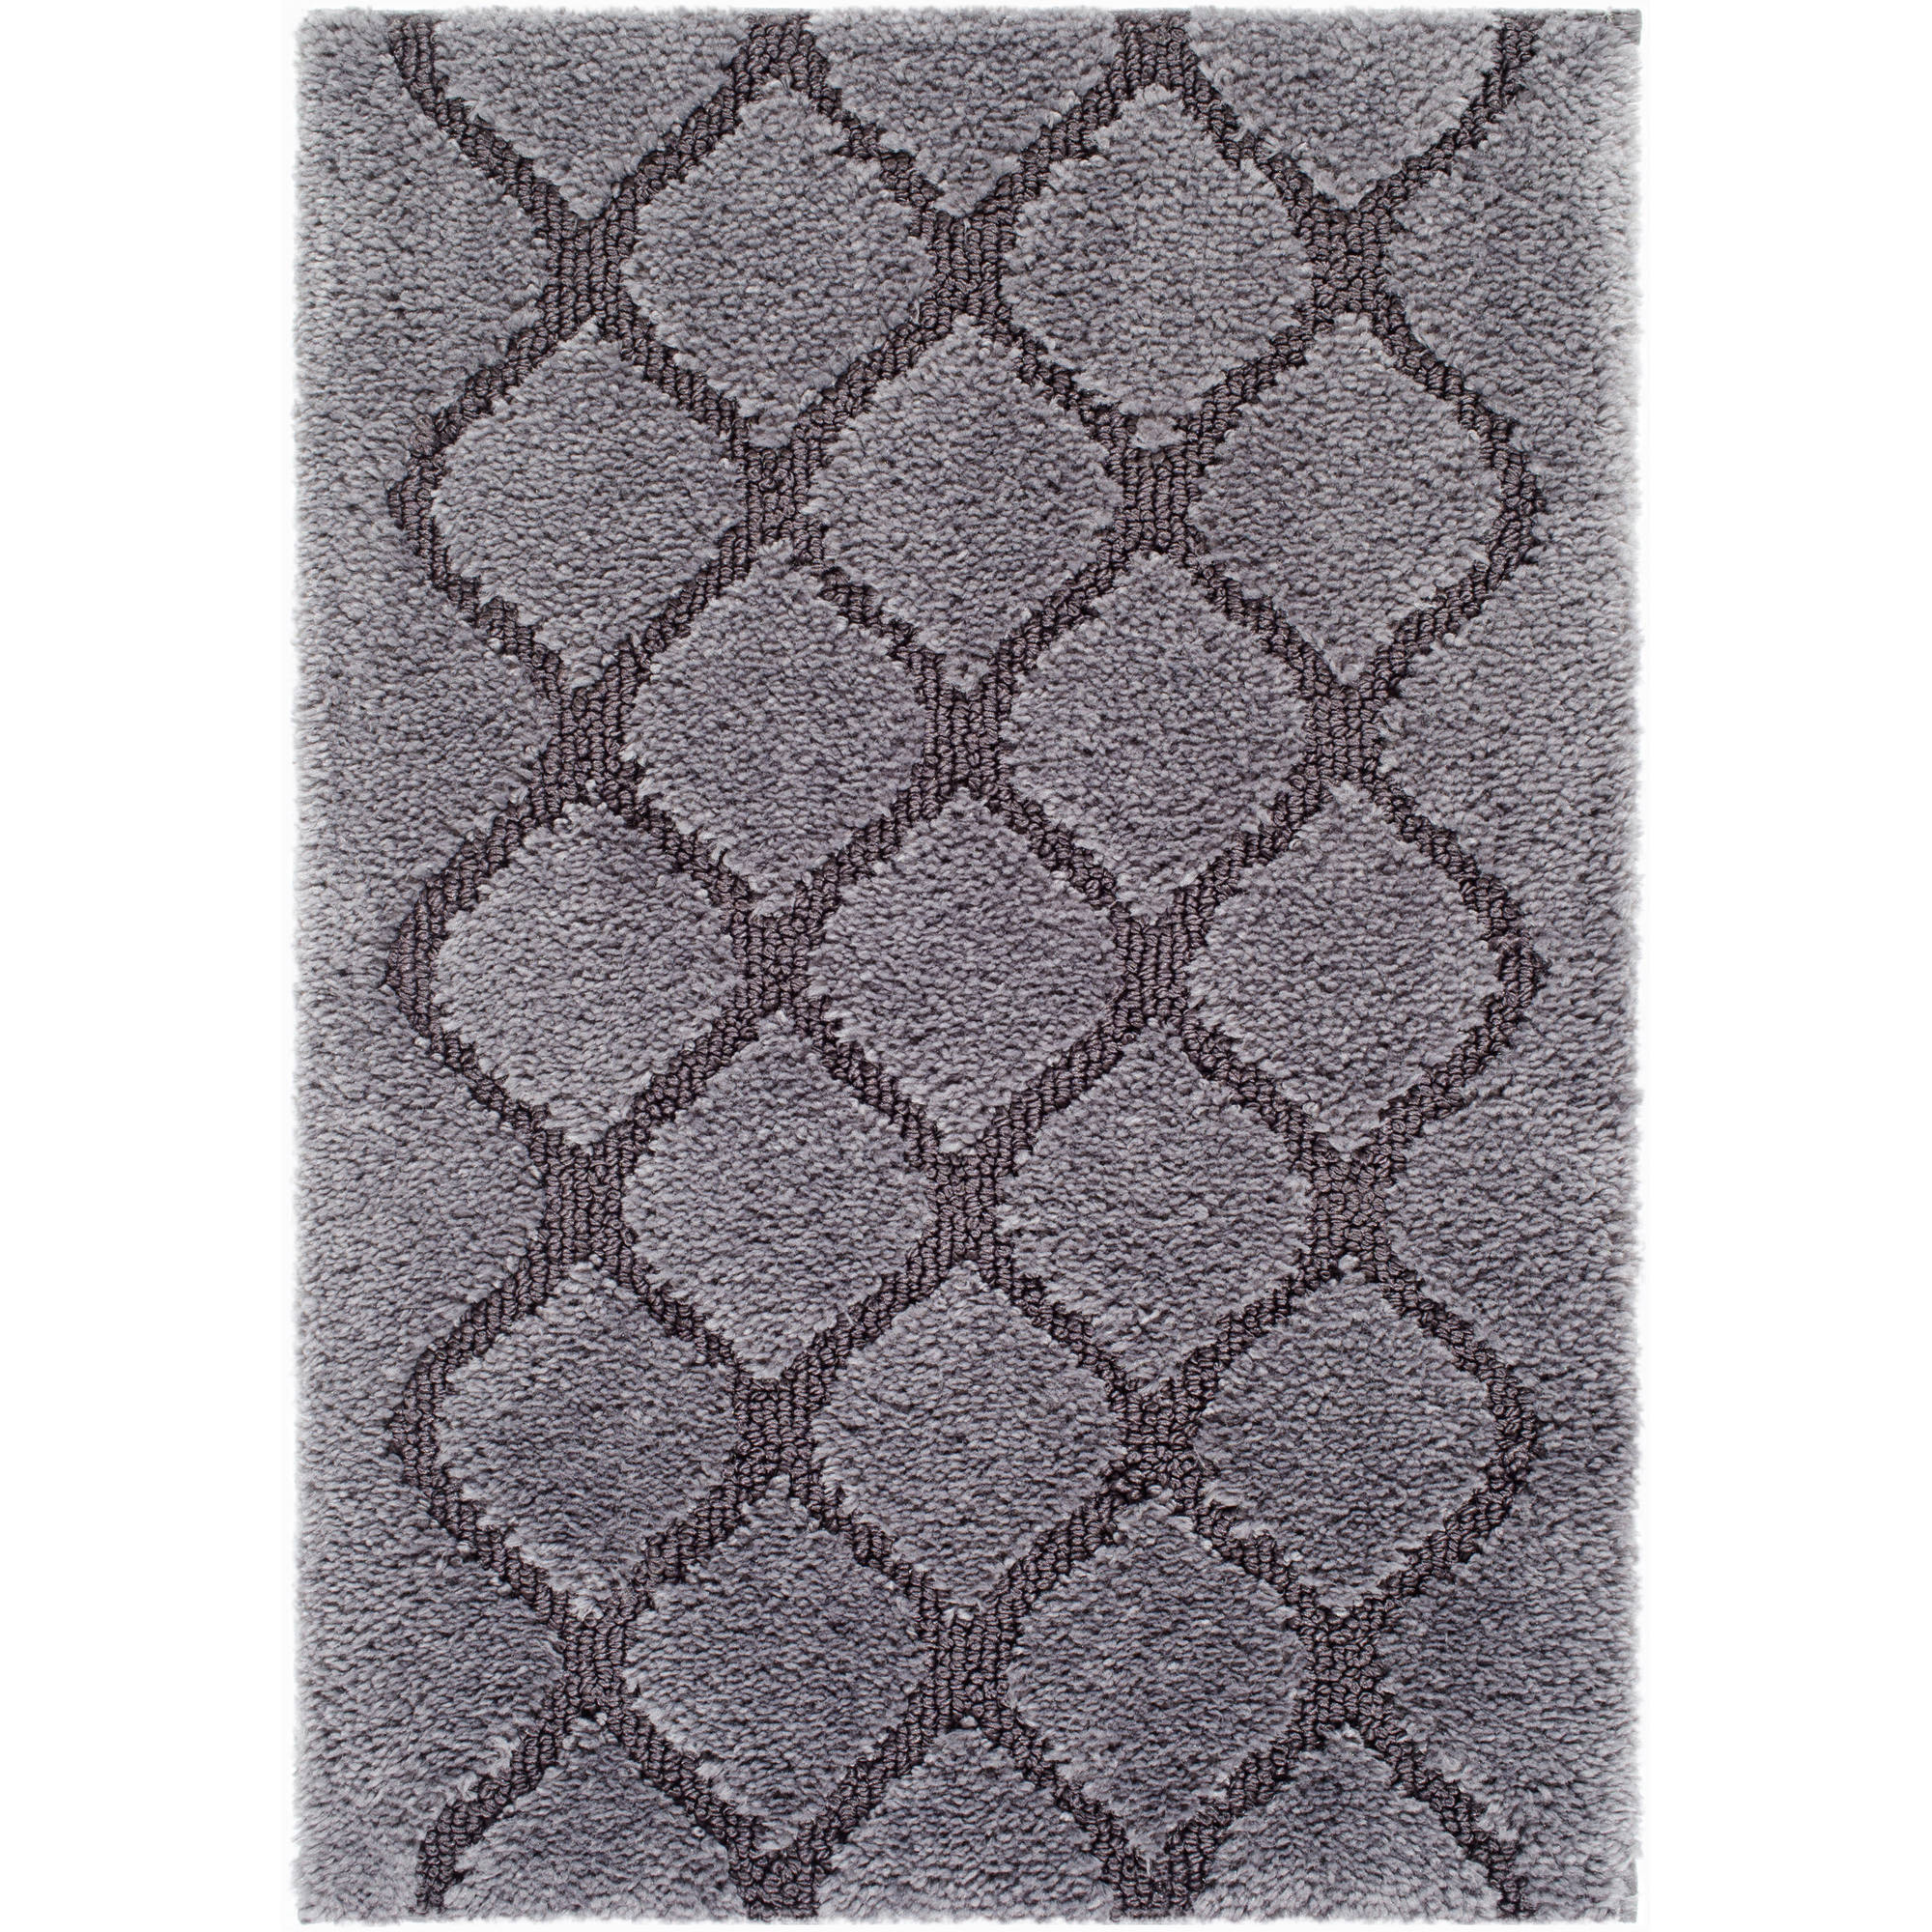 rugs runner x circular sisal home fabulous bathroom wool photos walmart black rug shag oriental area awesome of creativity improvement most